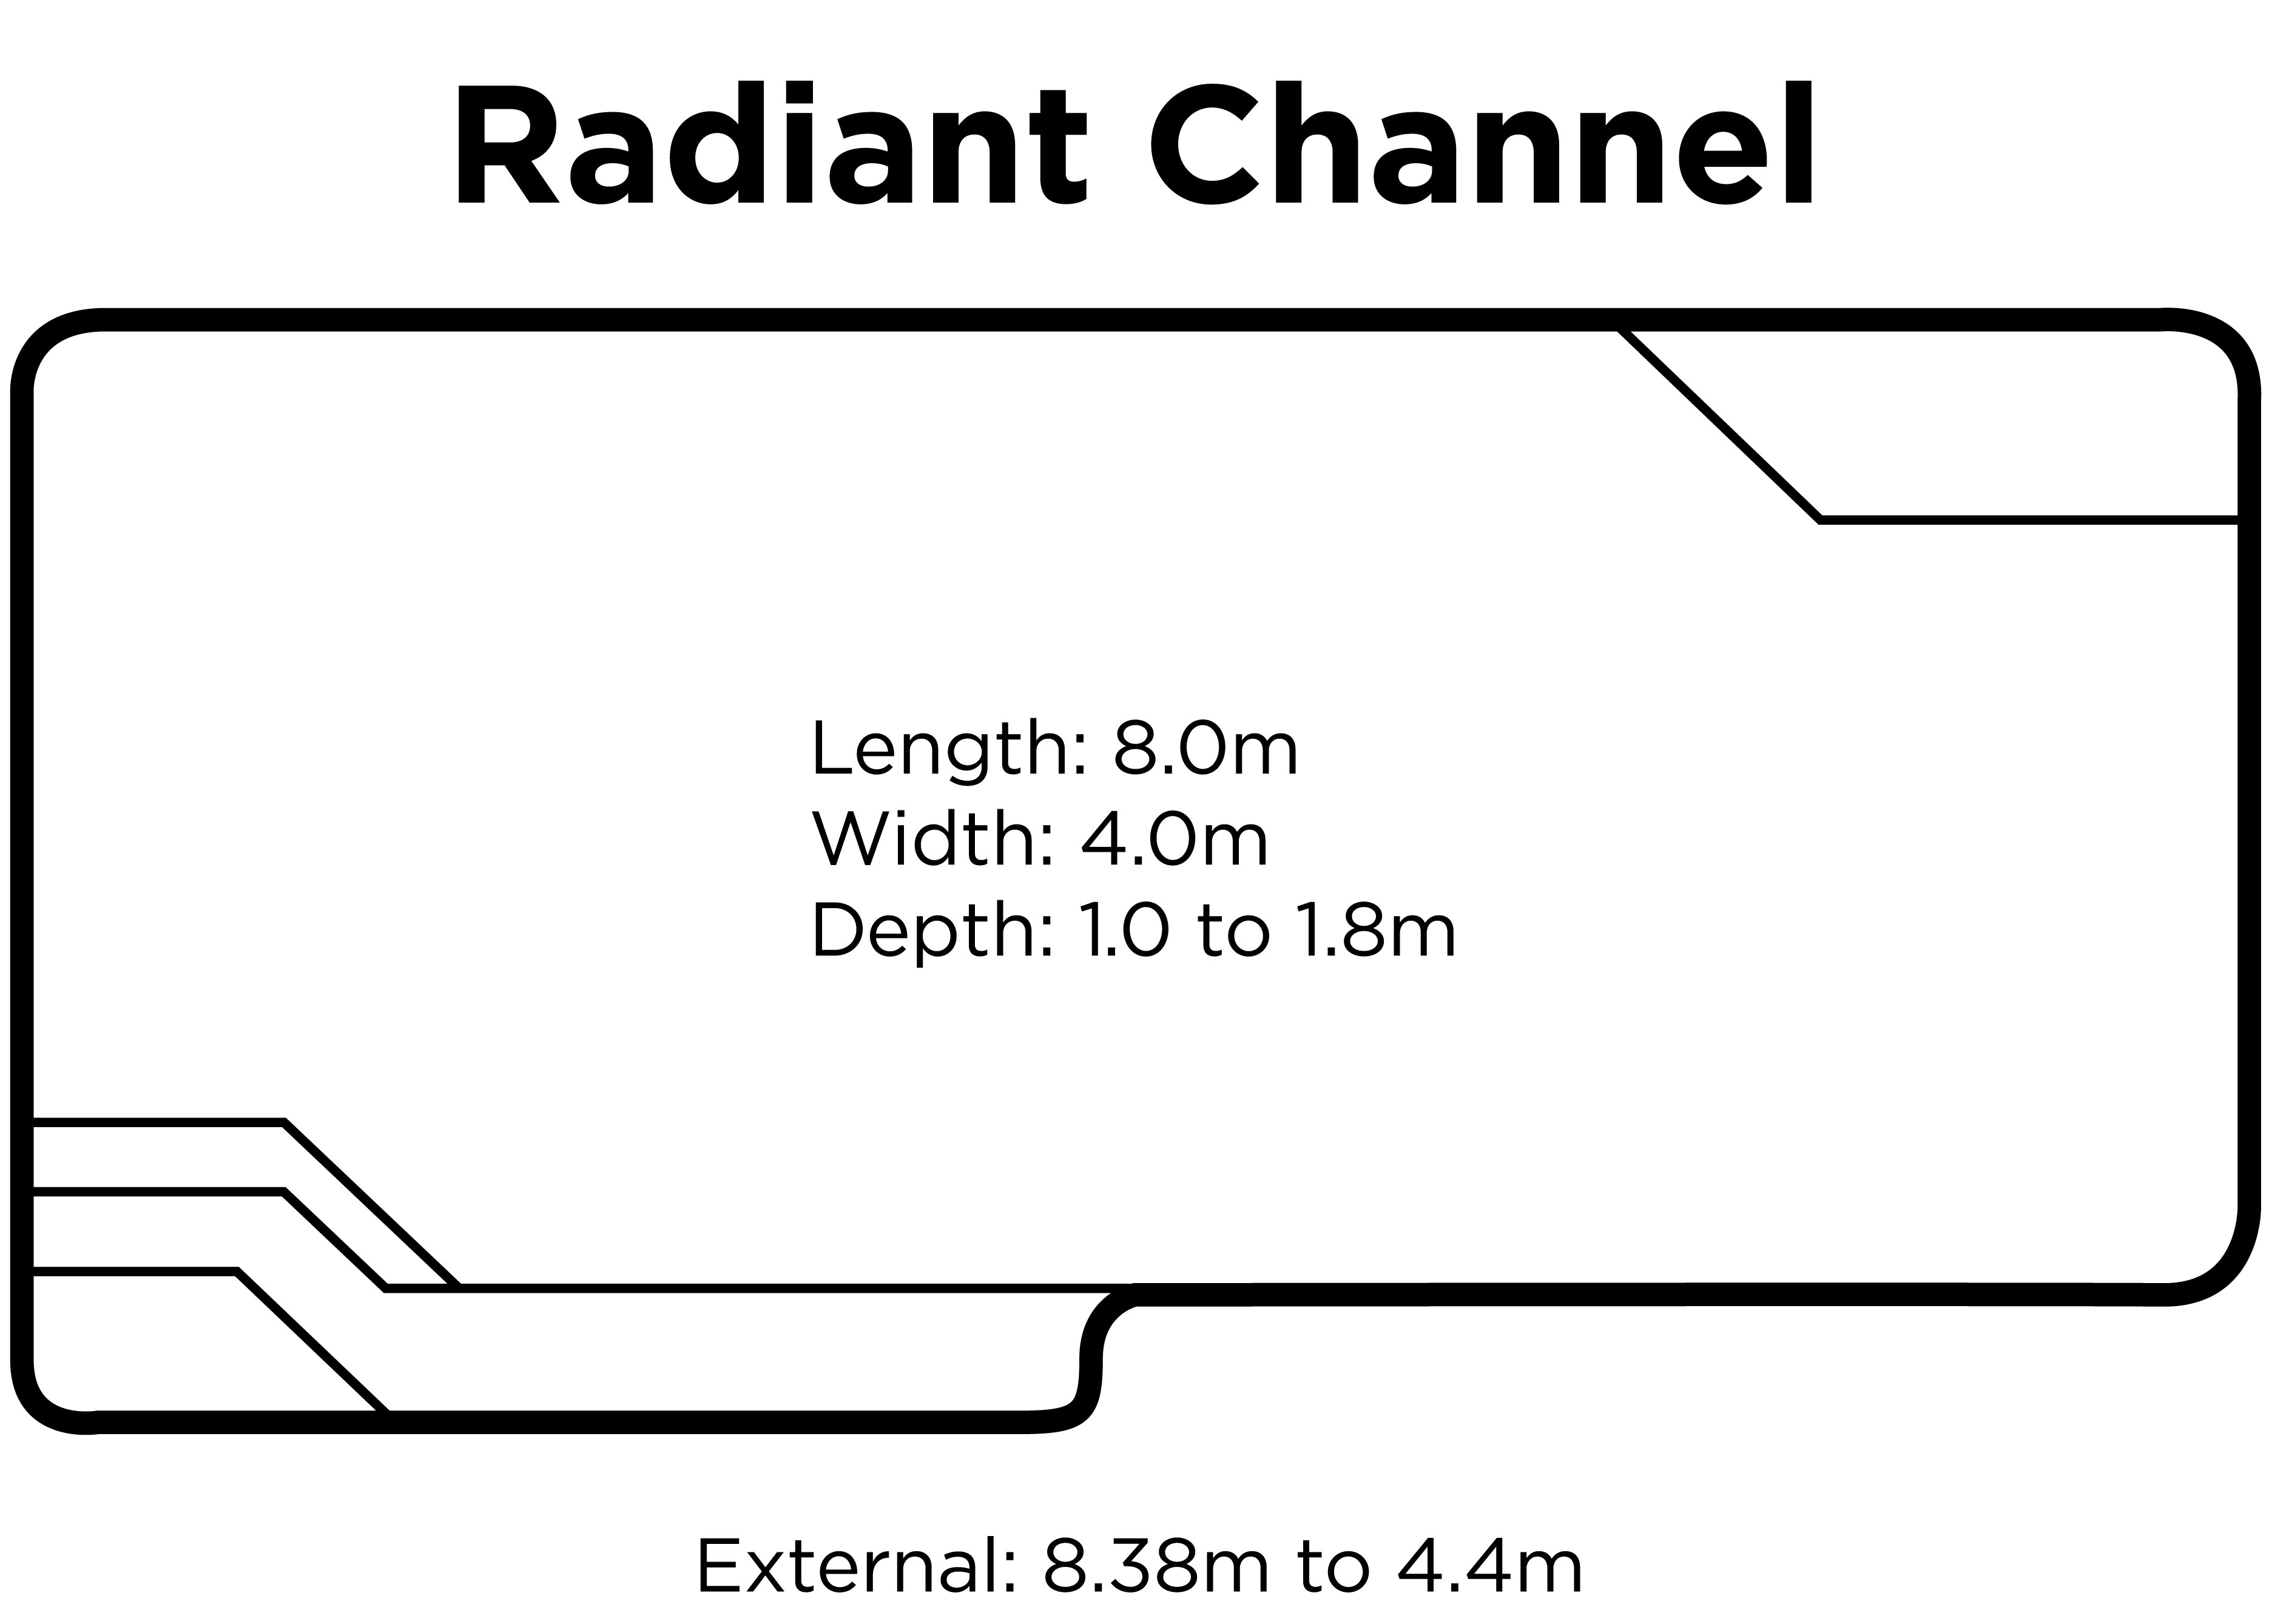 FINALRadiant Channel